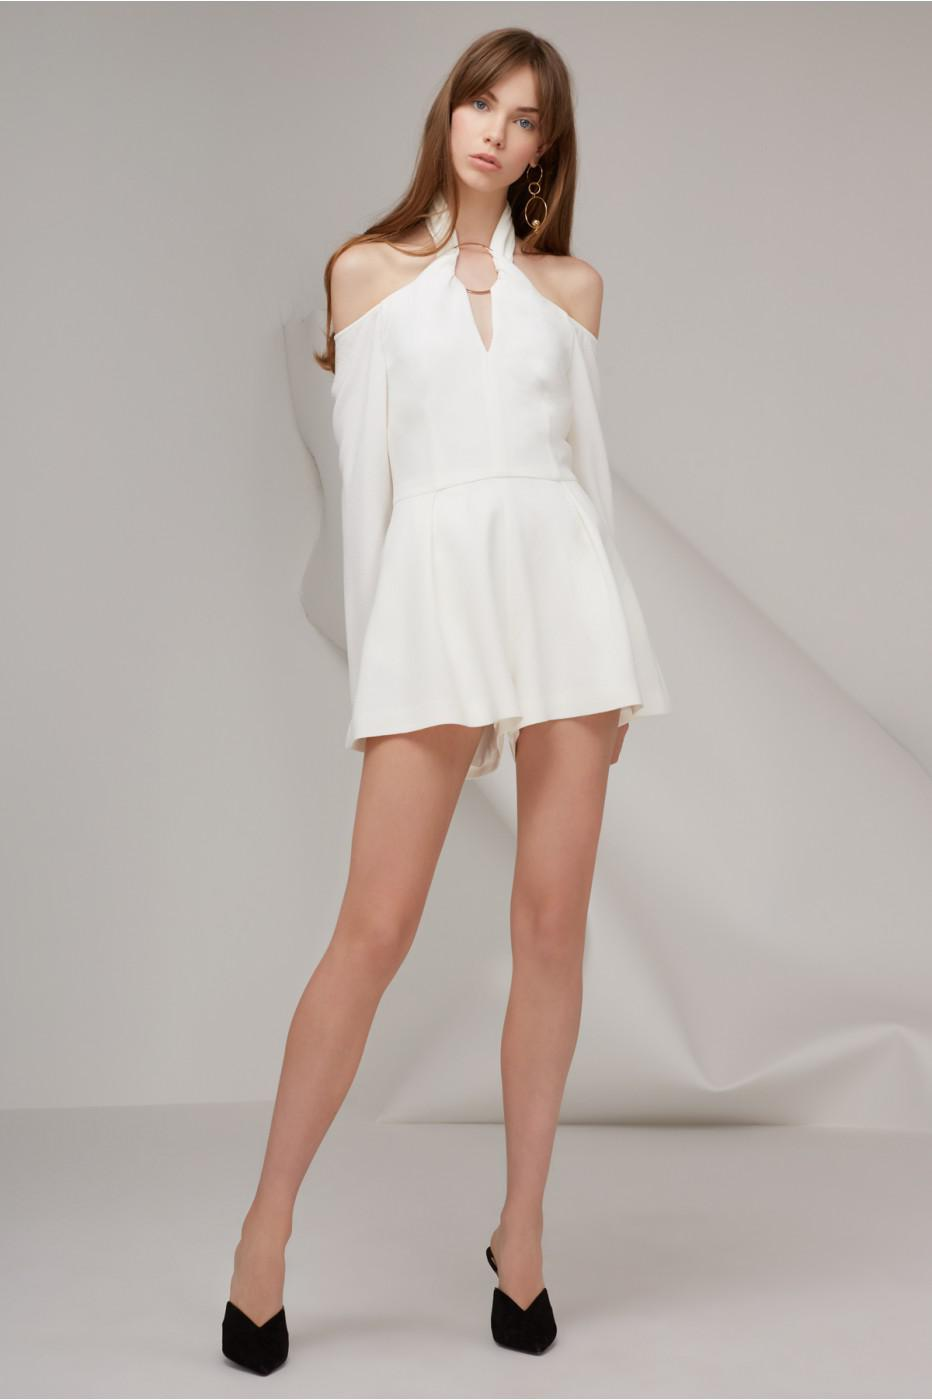 eacc9014a2 Lyst - Keepsake Darkest Light Long Sleeve Playsuit in White